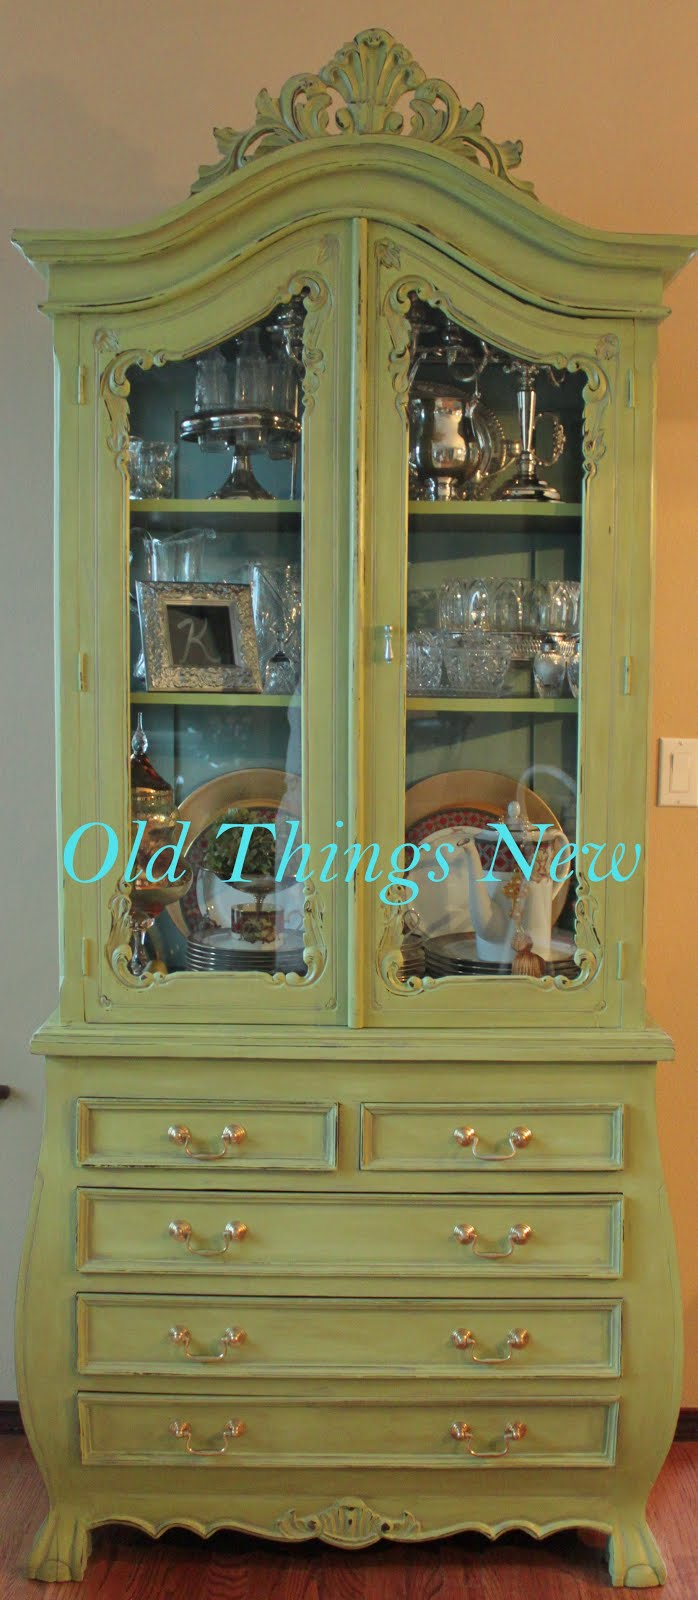 redoing furniture ideas. Stunning Not Your Grandmas House With Refurbished Furniture Before And After. Redoing Ideas